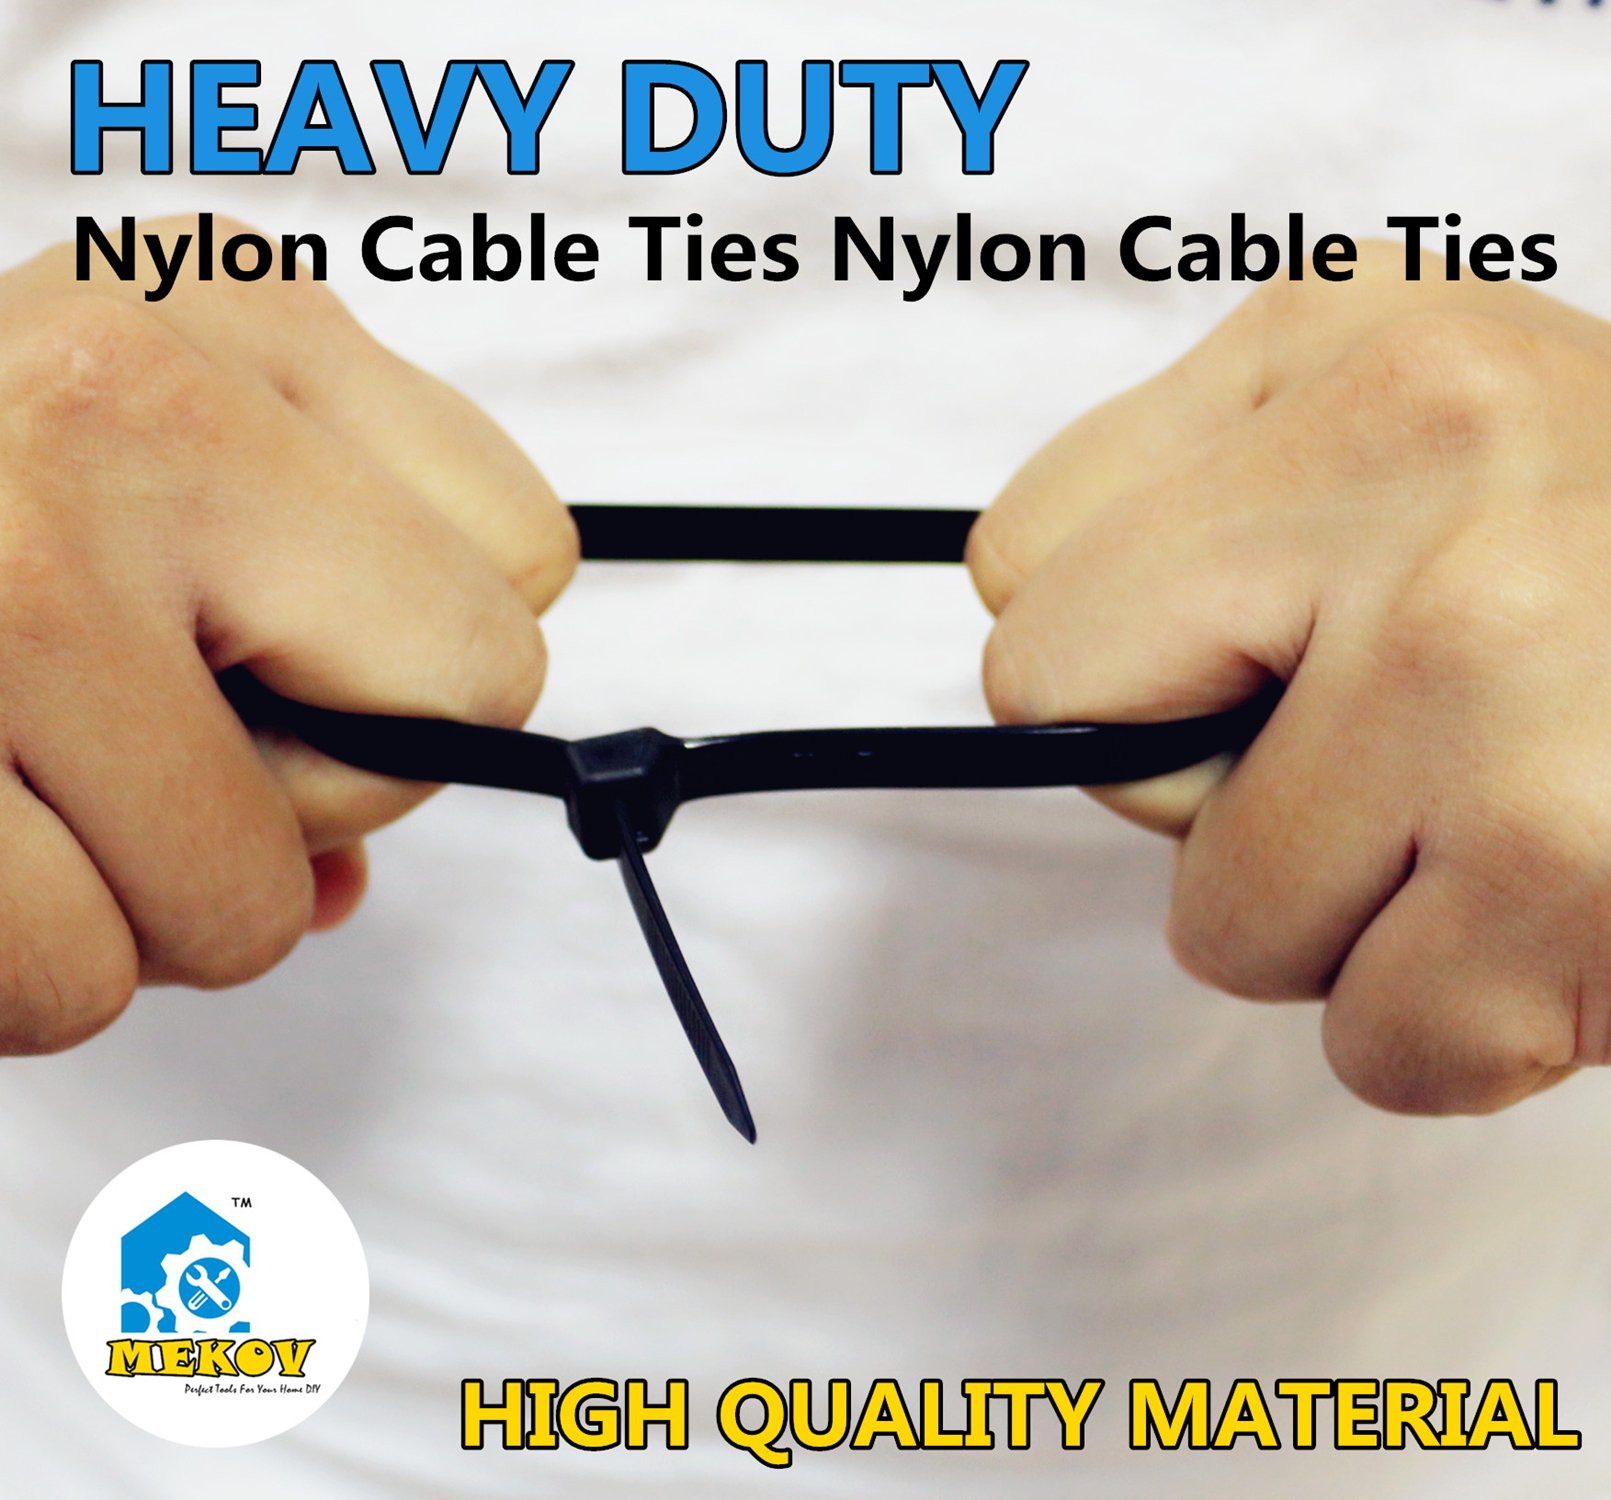 Nylon Cable Ties, Mekov, 6 Inch Heavy Duty Cable Ties, 18-LB Tensile Strength, Zip Ties with 0.1 Inch Width, Durable, Indoor & Outdoor use, UV Resistant (6'', 1000 Pack, Yellow) by Mekov (Image #3)